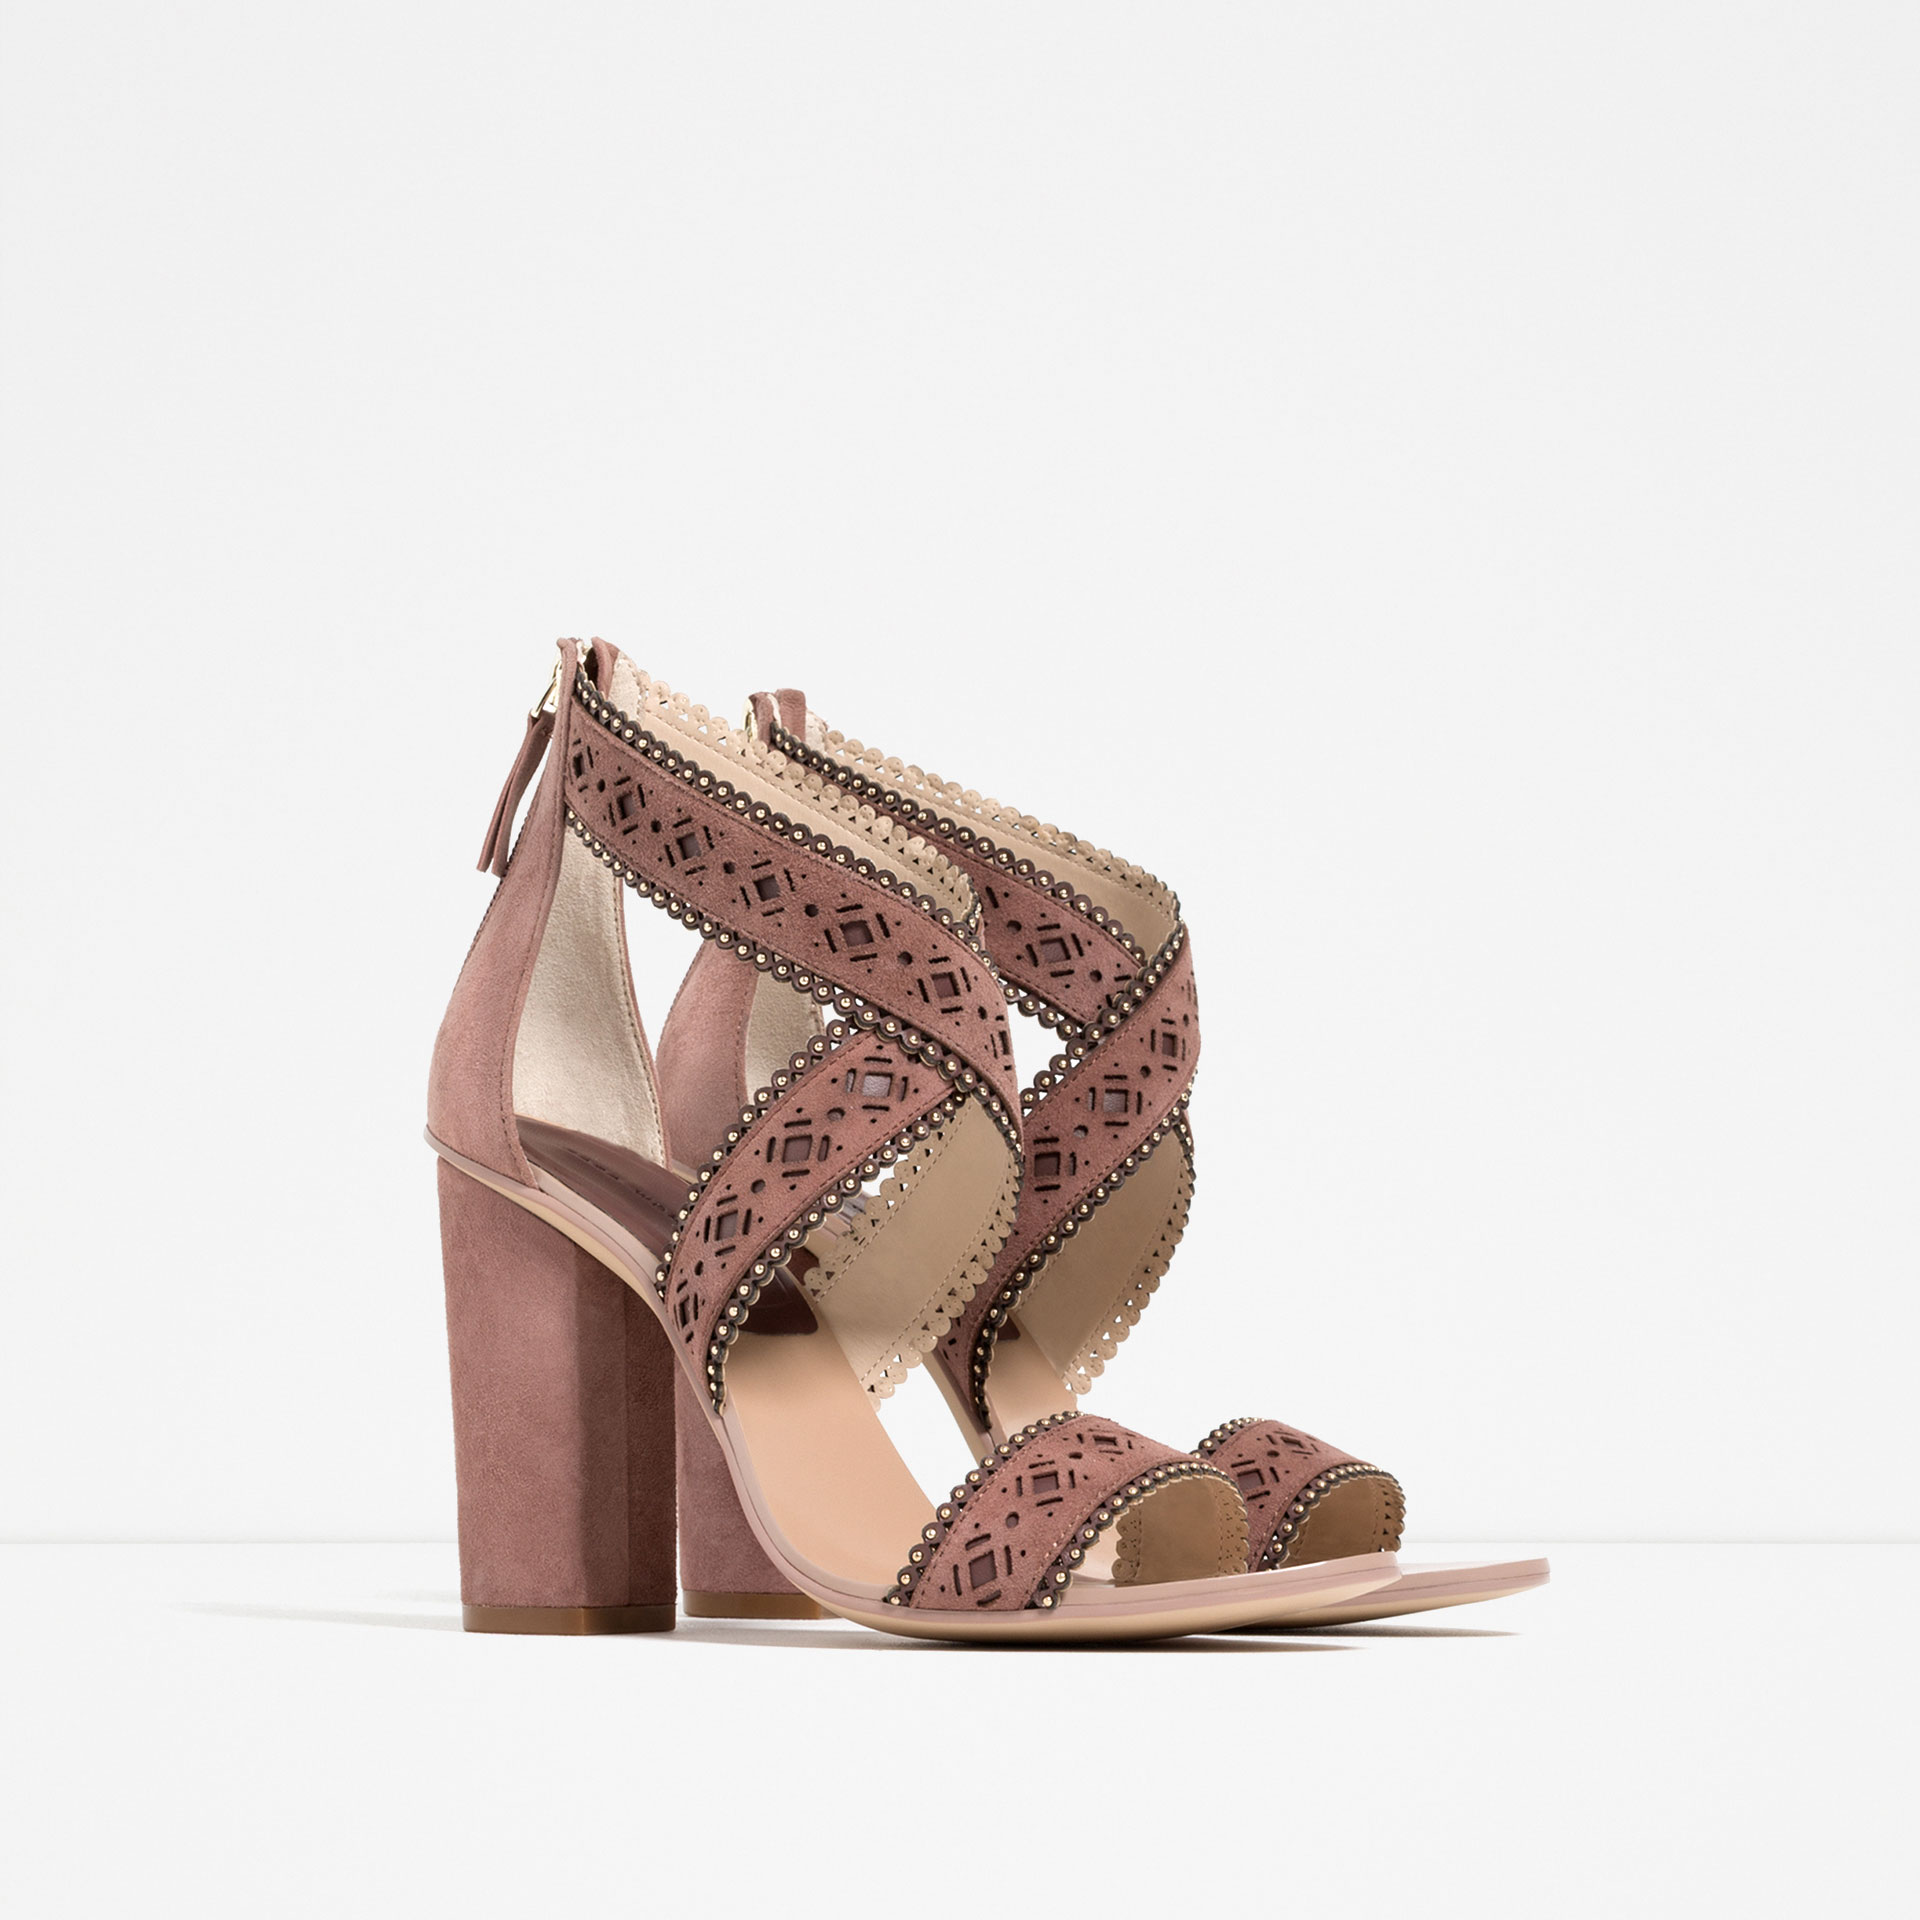 Zara laser-cut leather sandals